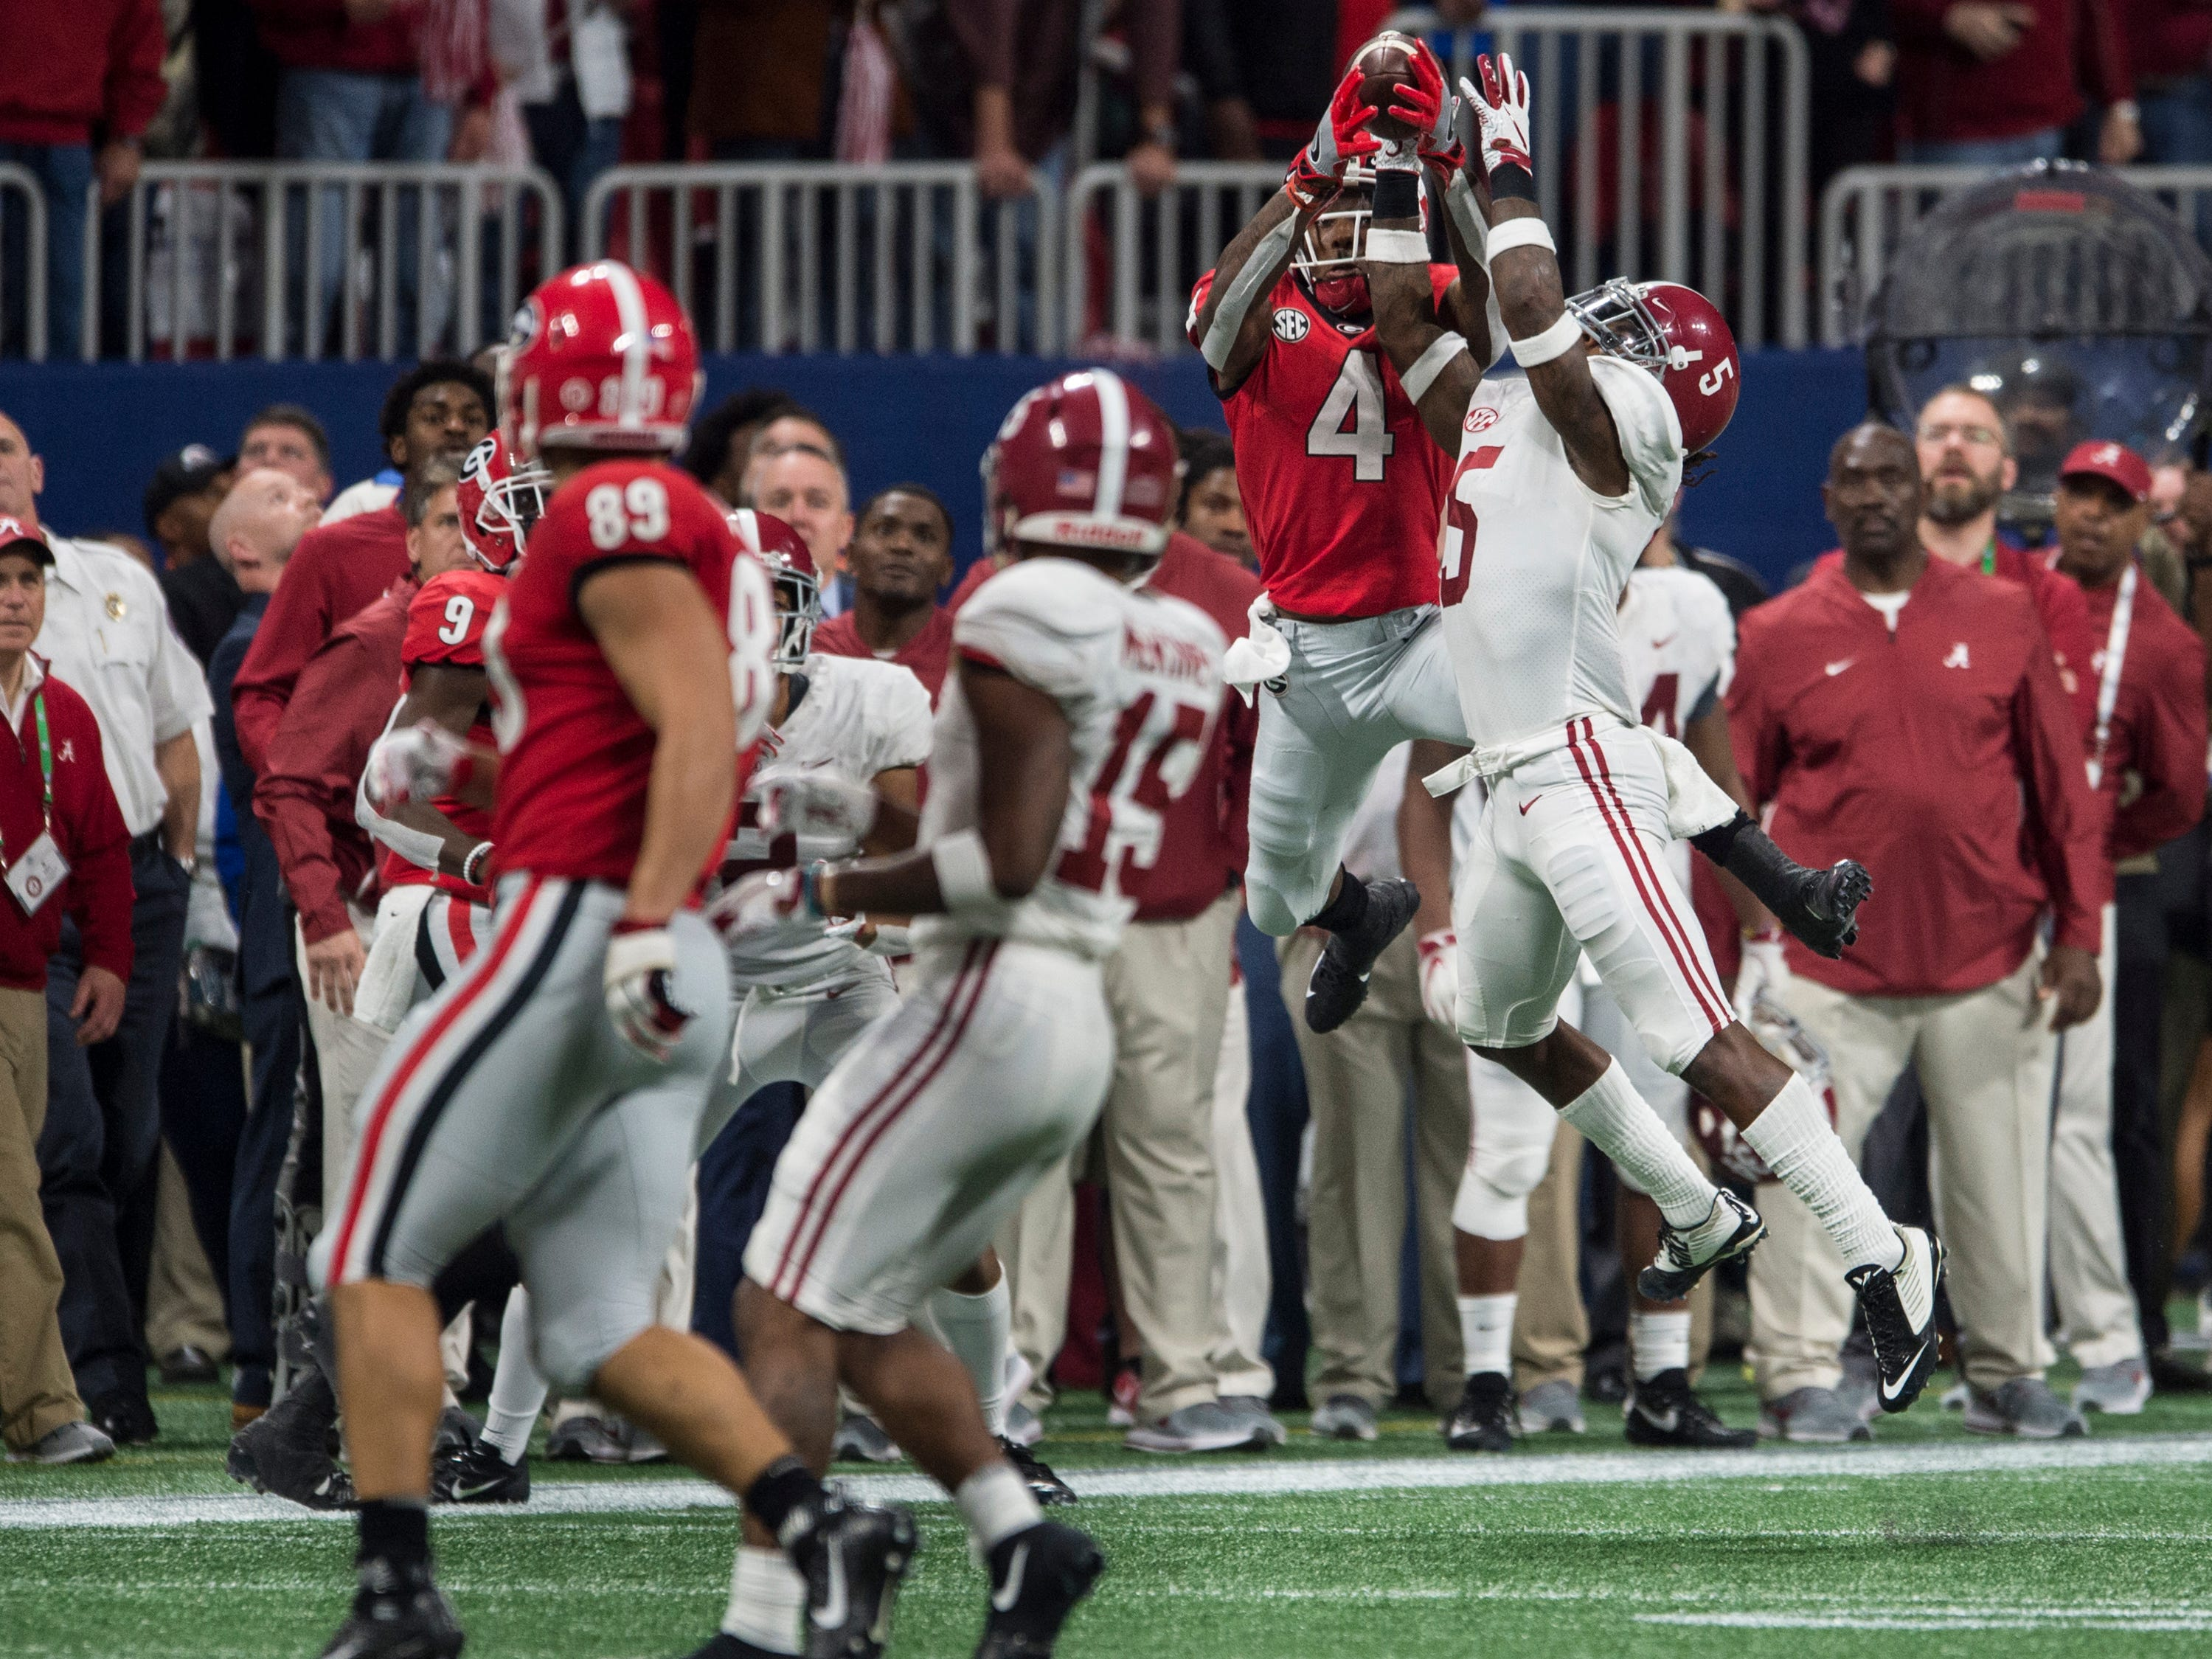 Alabama defensive back Shyheim Carter (5) breaks up a pass intended for Georgia wide receiver Mecole Hardman (4) during the SEC Championship game at Mercedes-Benz Stadium in Atlanta, Ga., on Saturday Dec. 1, 2018. Alabama defeated Georgia 35-28.